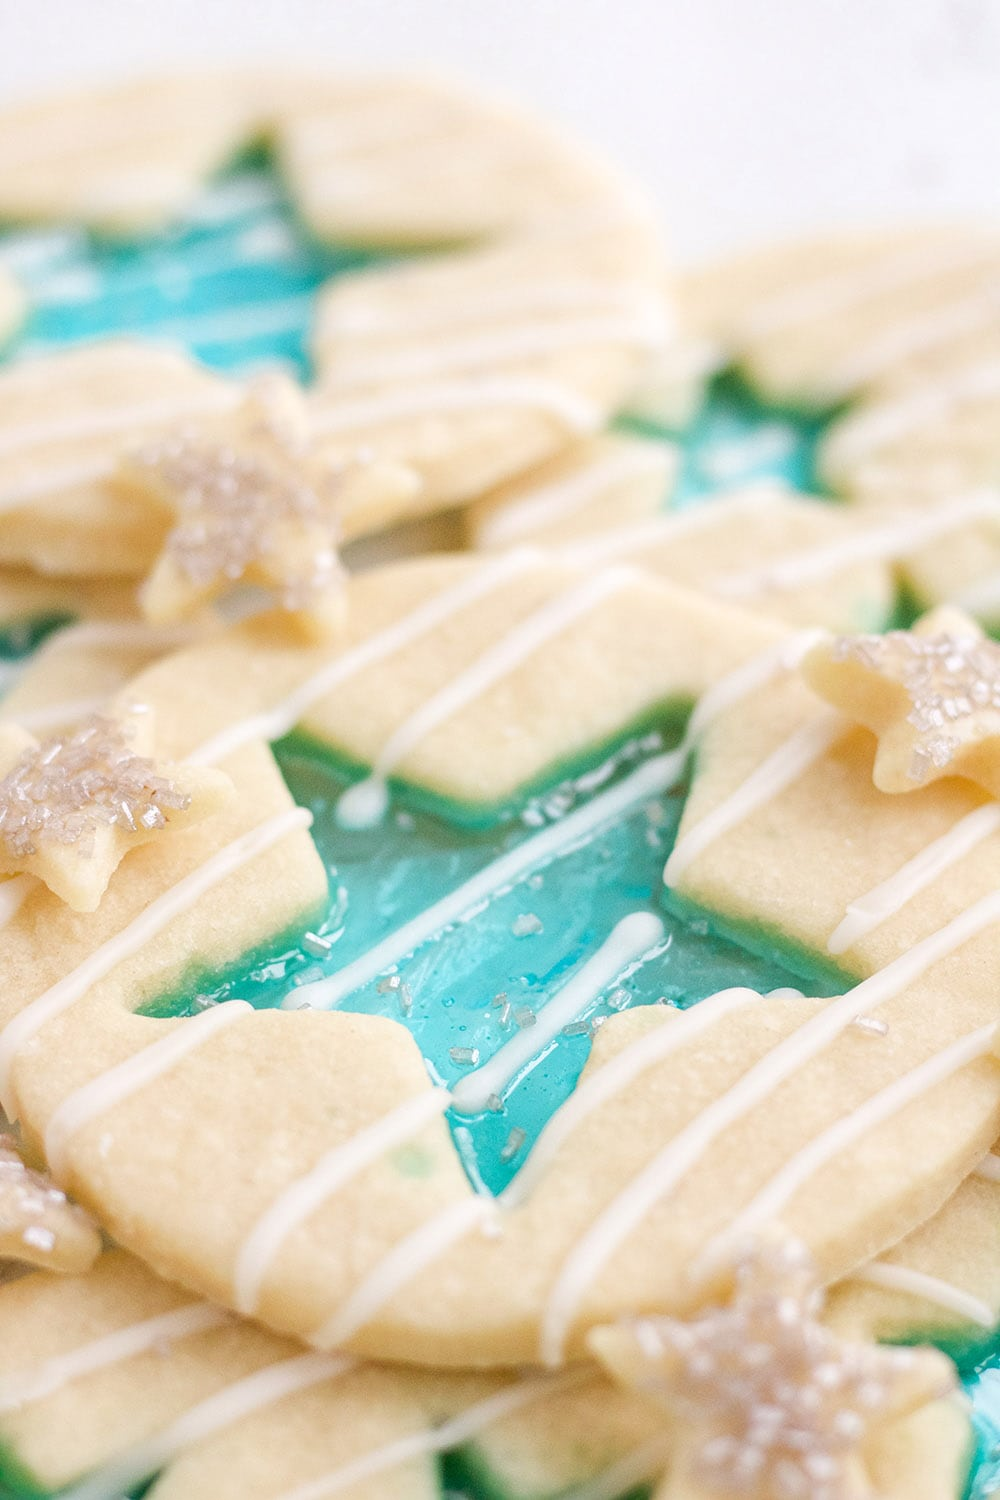 Jolly Rancher candy cookies with blue stars and white glaze.